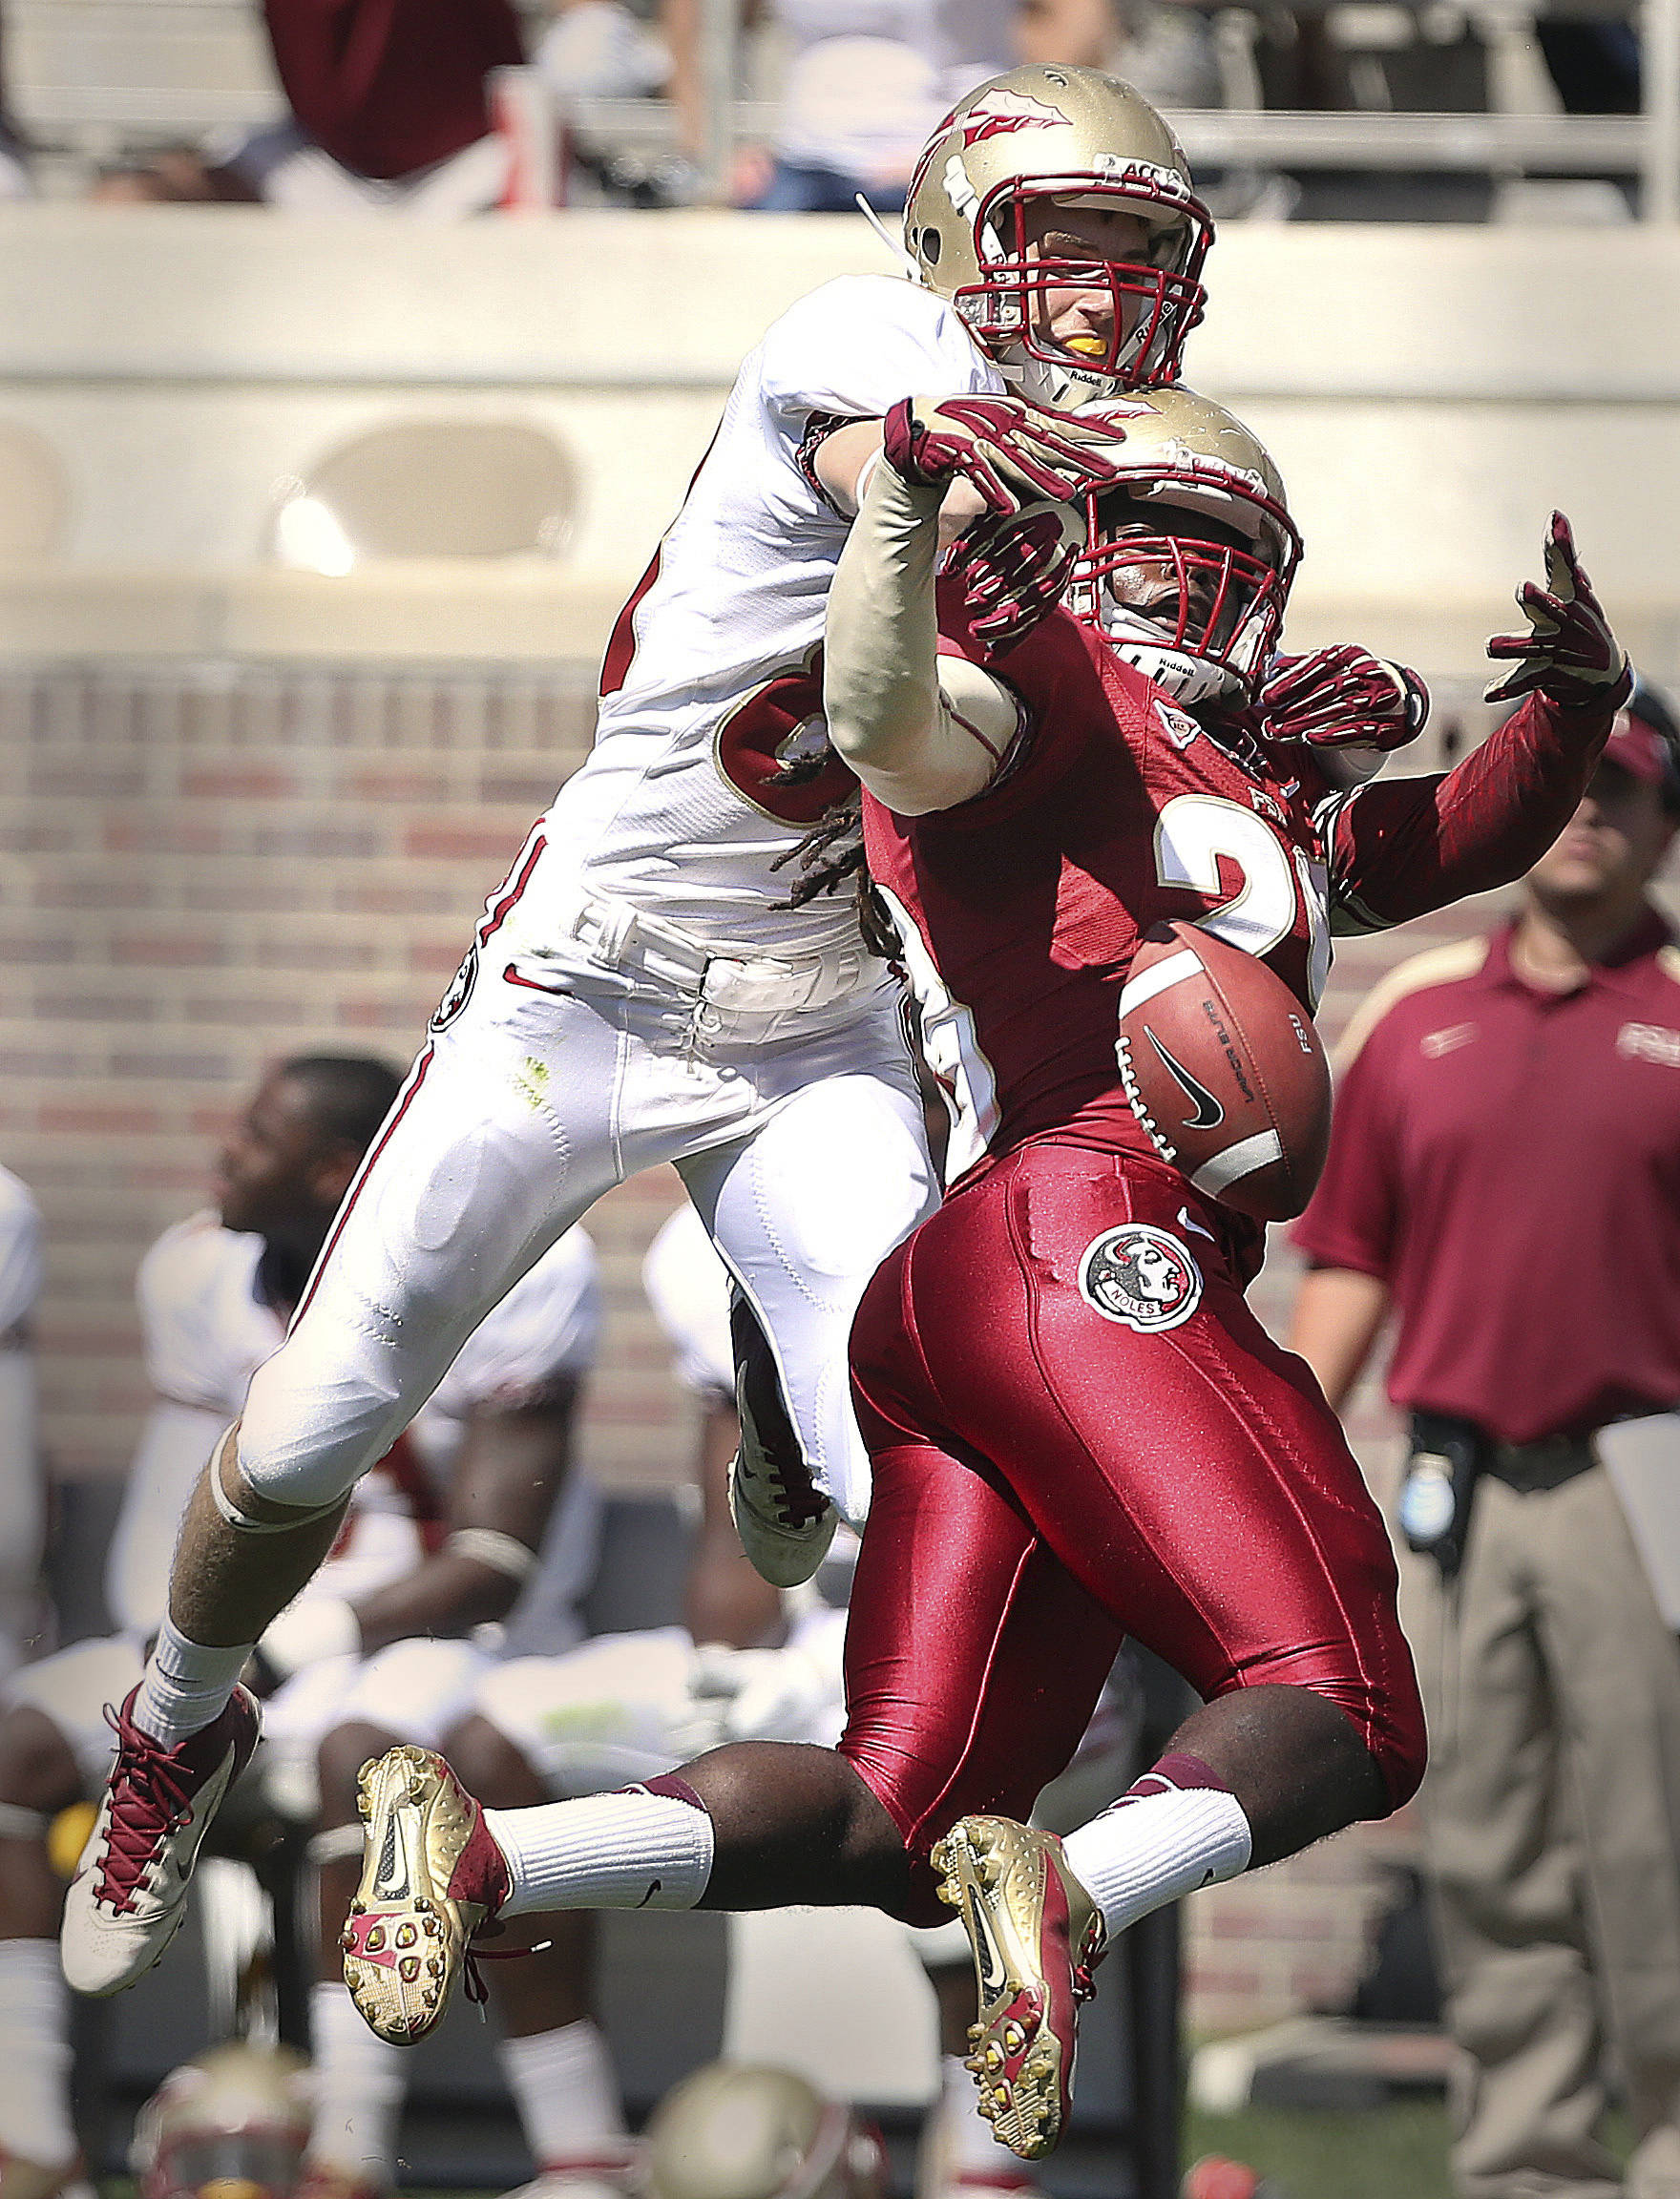 Florida State receiver Jeren Kowalewski, left, battles defensive back Donovan Todd for a pass on Saturday. The defense won this battle inside of Doak Campbell Stadium on April 13, 2013. An estimated 25 thousand people came out to get a first look at their beloved Seminoles. (AP Photo/Tallahassee Democrat, Mike Ewen)